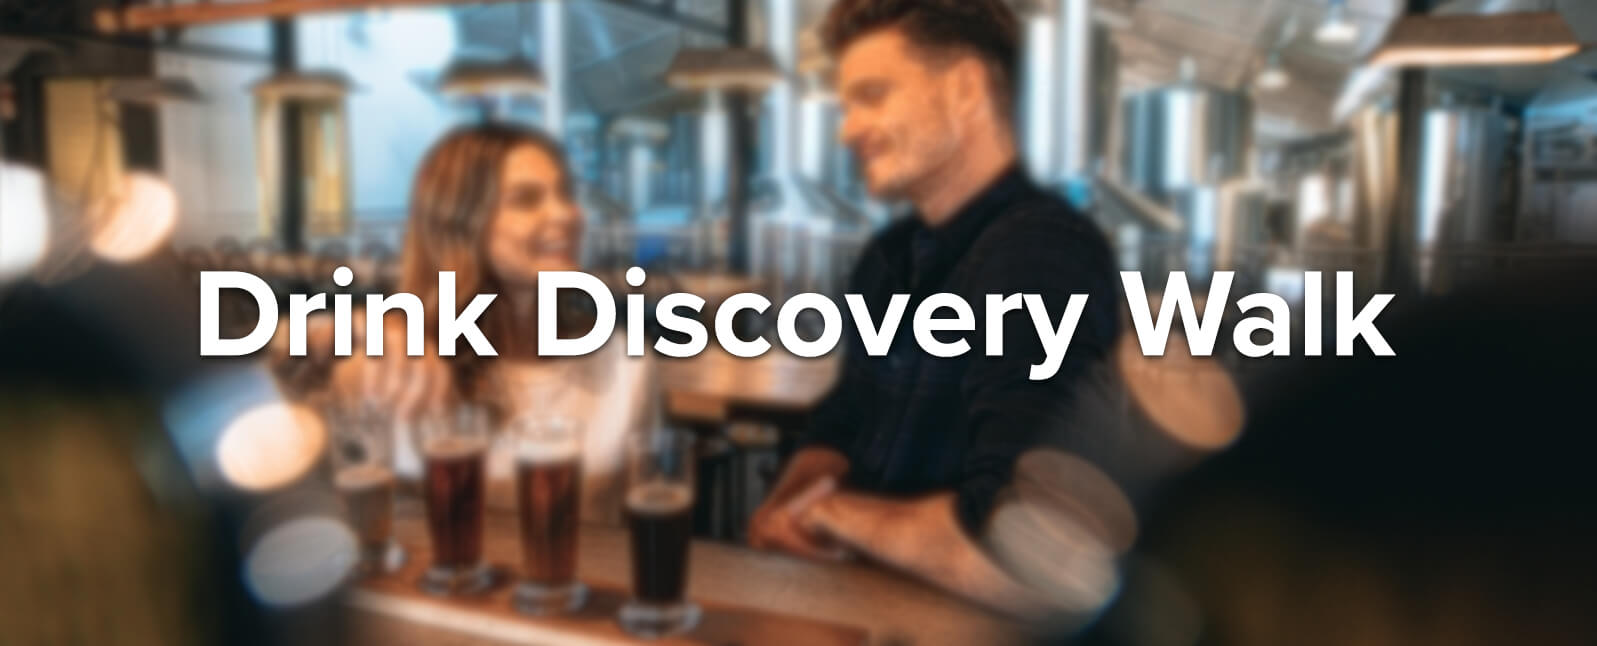 Drink Discovery Walk - Clue Hero.jpg